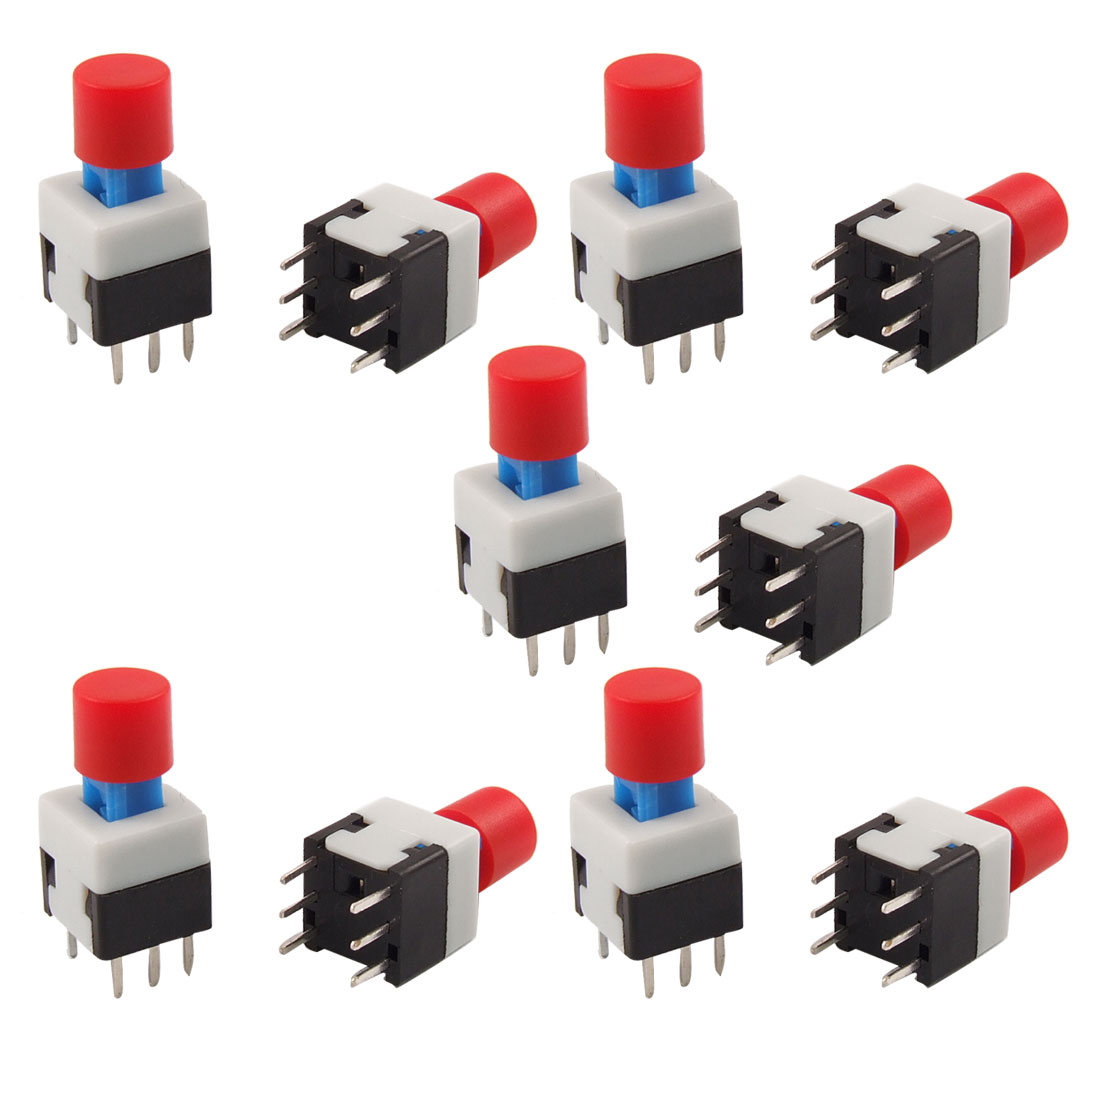 10 Pcs 8 x 8mm Red Round Cap Self Lock Push Button Tact Tactile Switch 6 Pin PCB